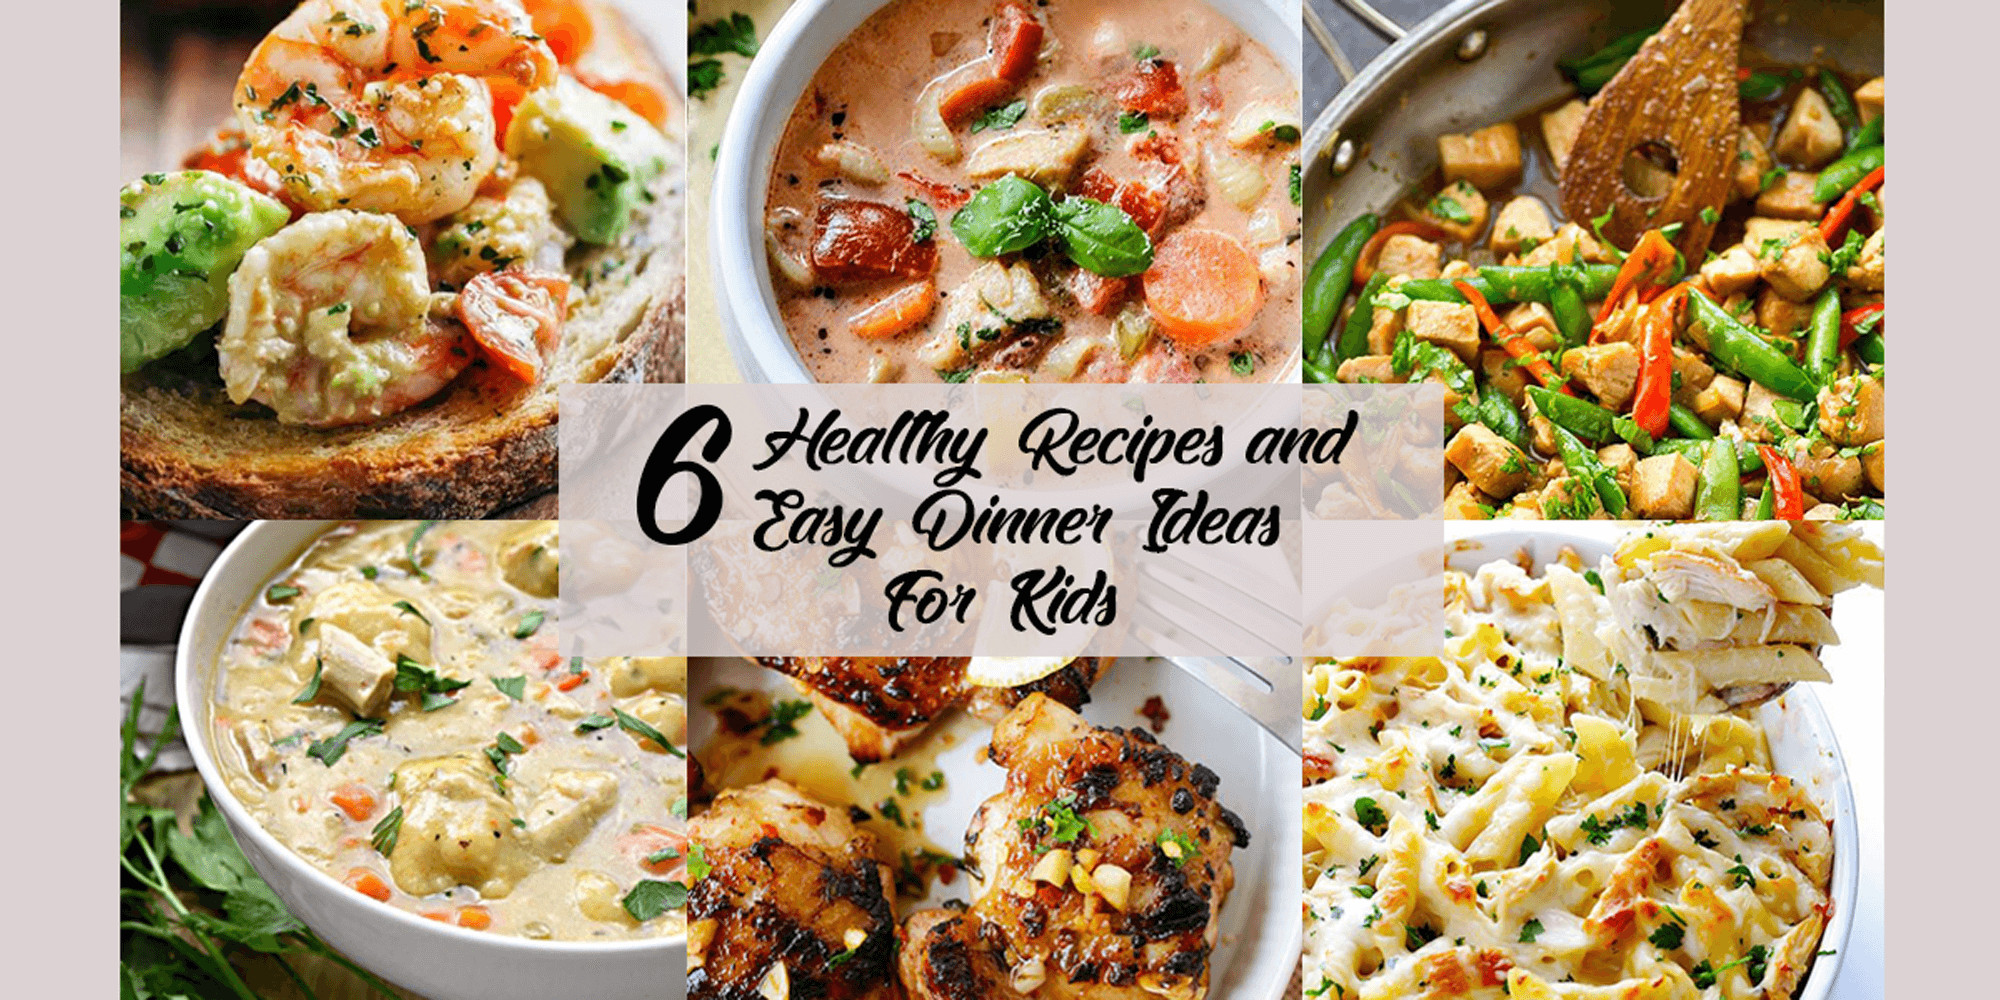 Healthy Dinner Recipes For Kids  6 Healthy and Easy Dinner Ideas for Kids